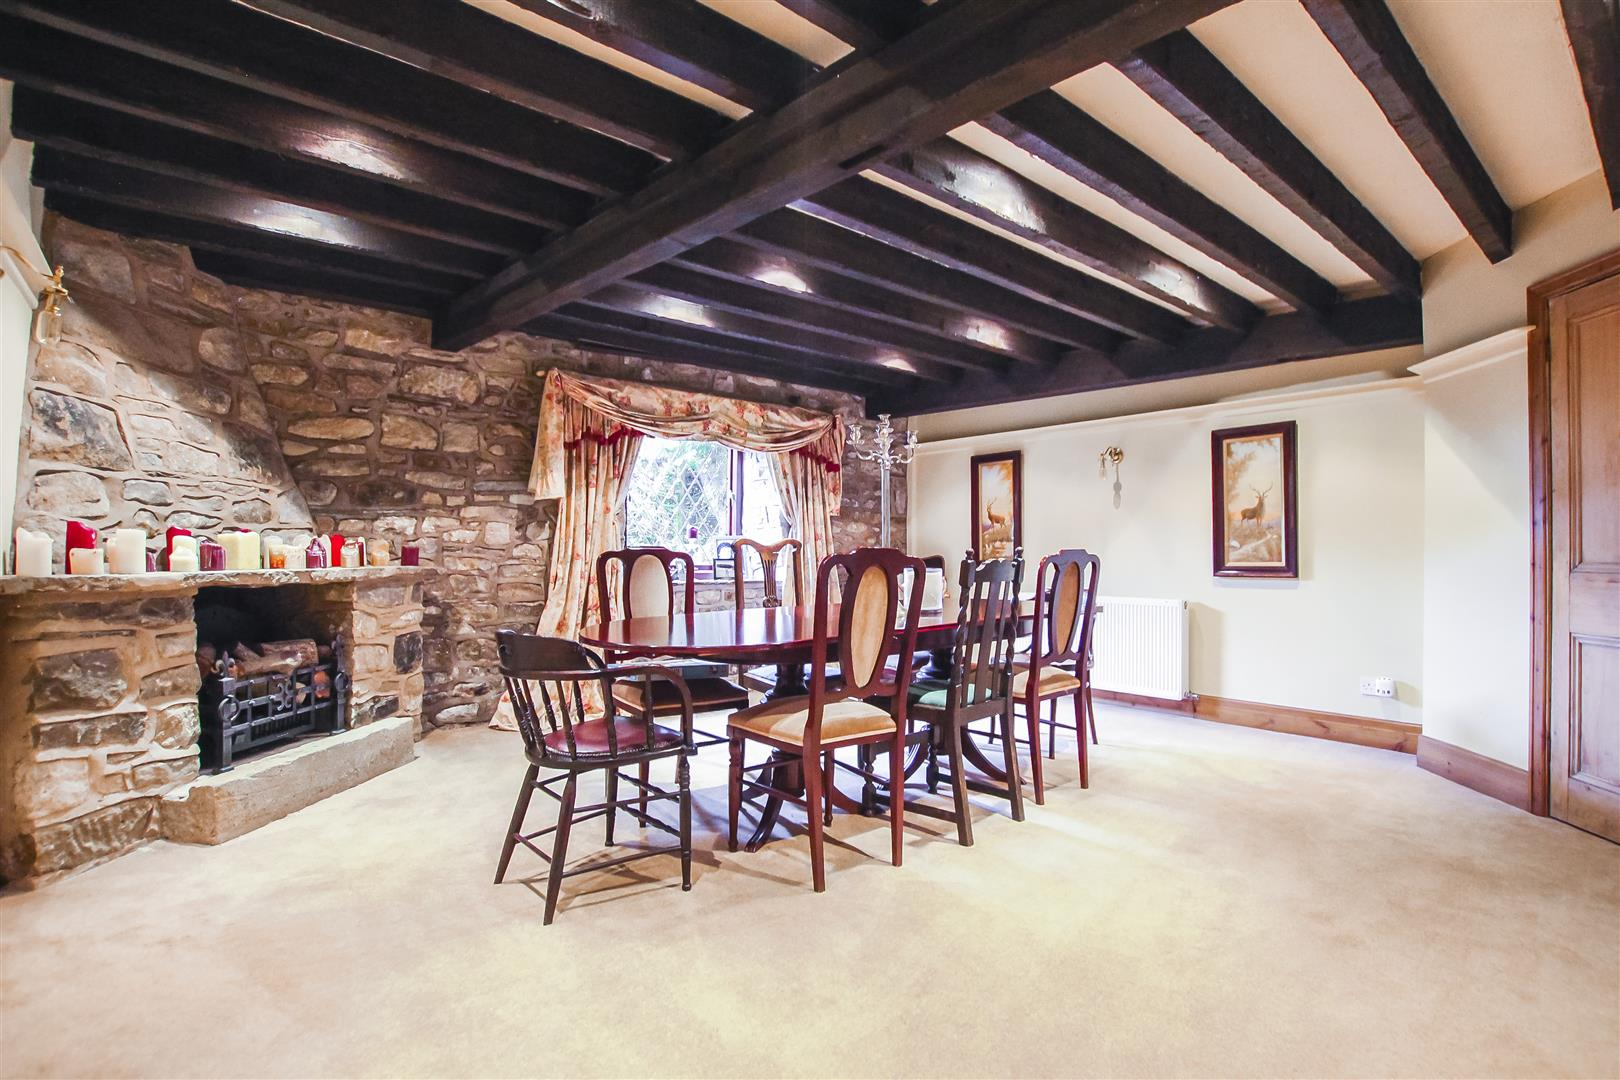 5 Bedroom Barn Conversion For Sale - Image 5